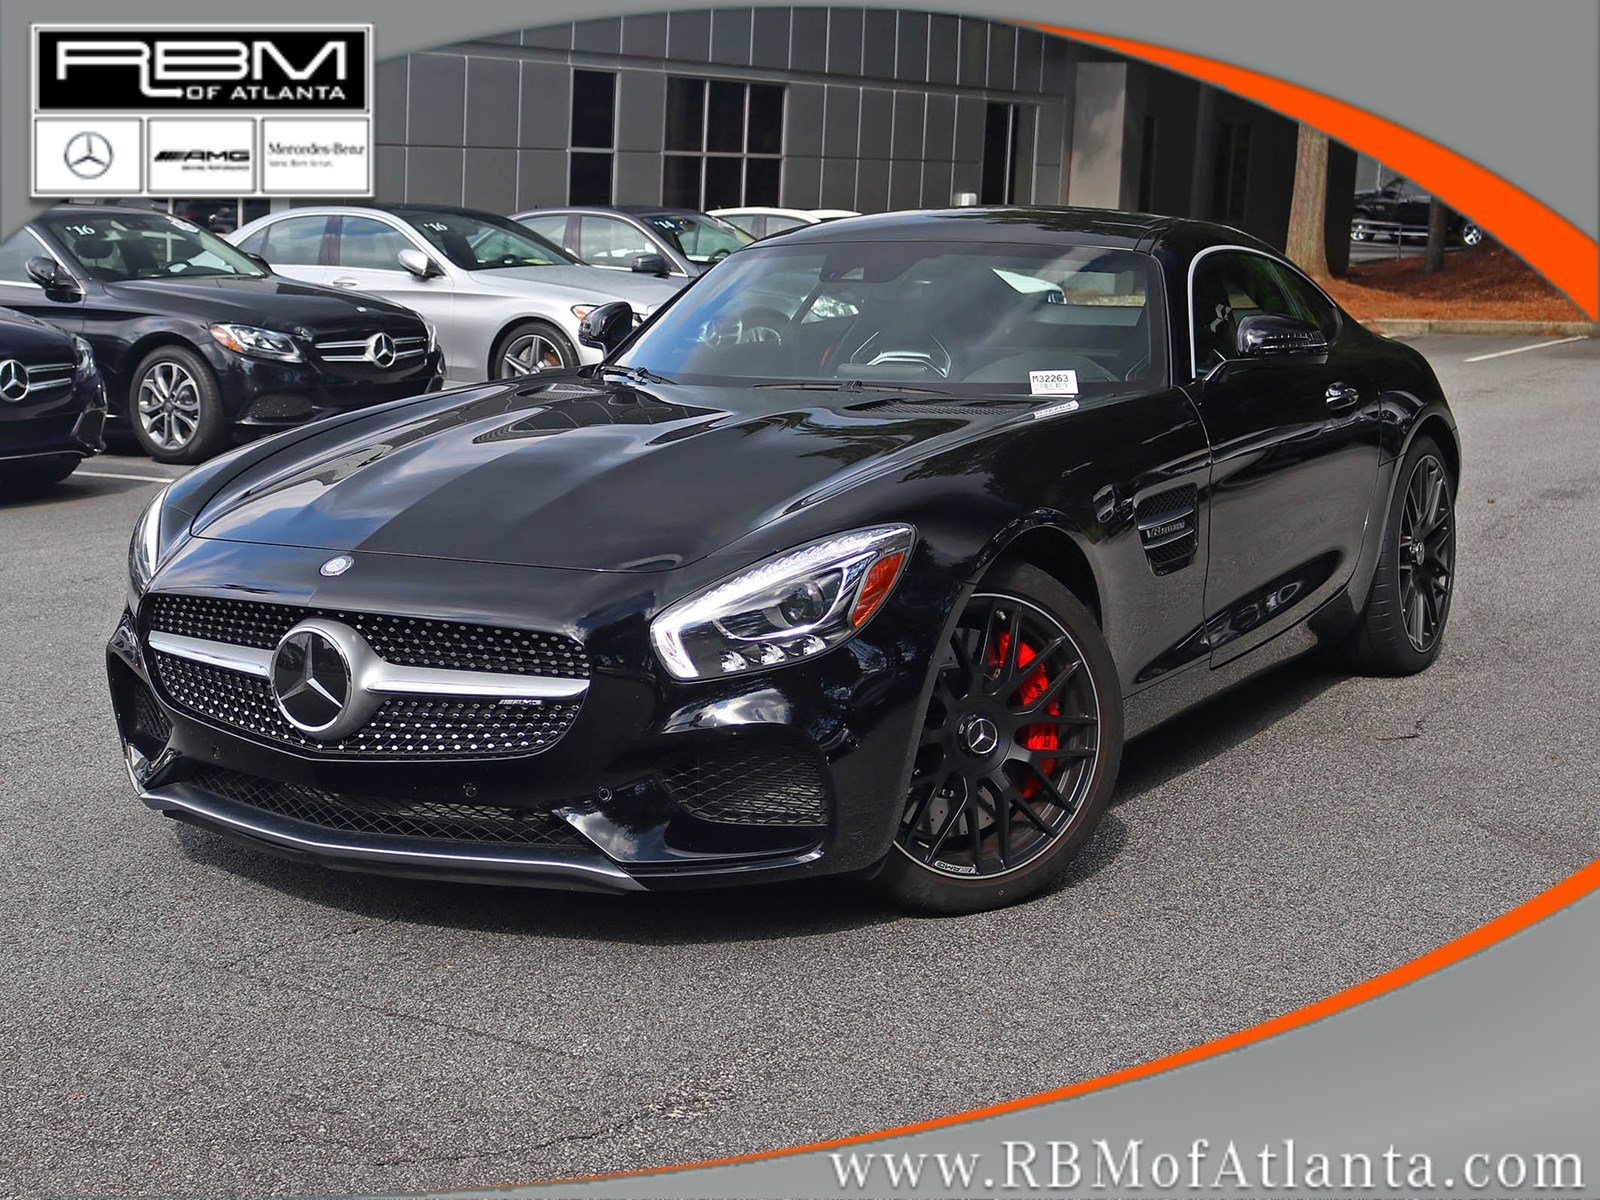 New 2017 mercedes benz gt s gt s amg coupe in atlanta for 2017 mercedes benz gts amg price